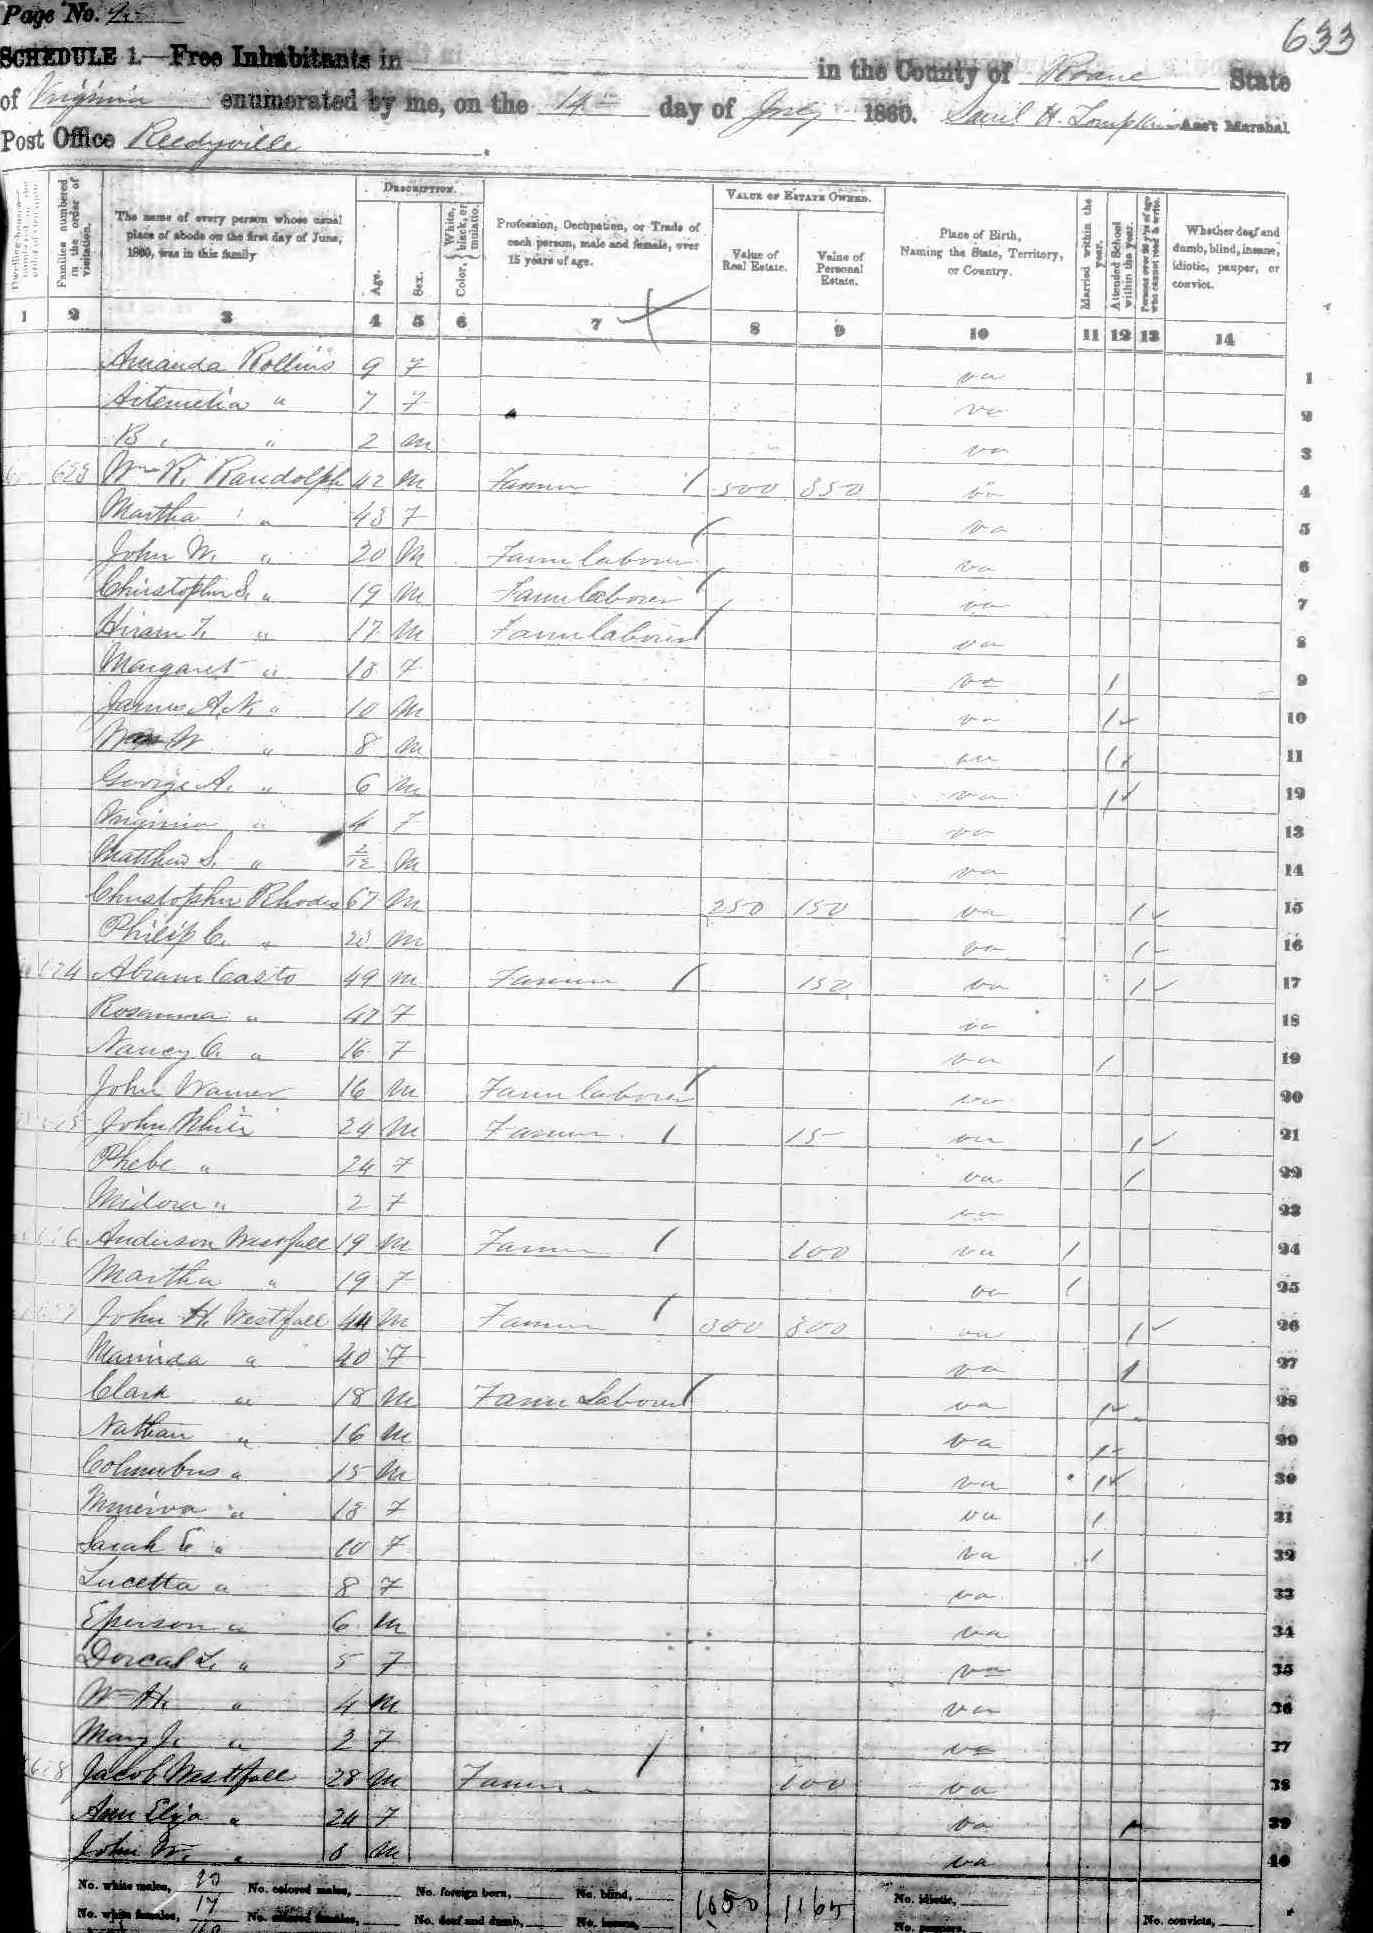 Roane County WV 1860 census images US Data Repository – Irs Insolvency Worksheet